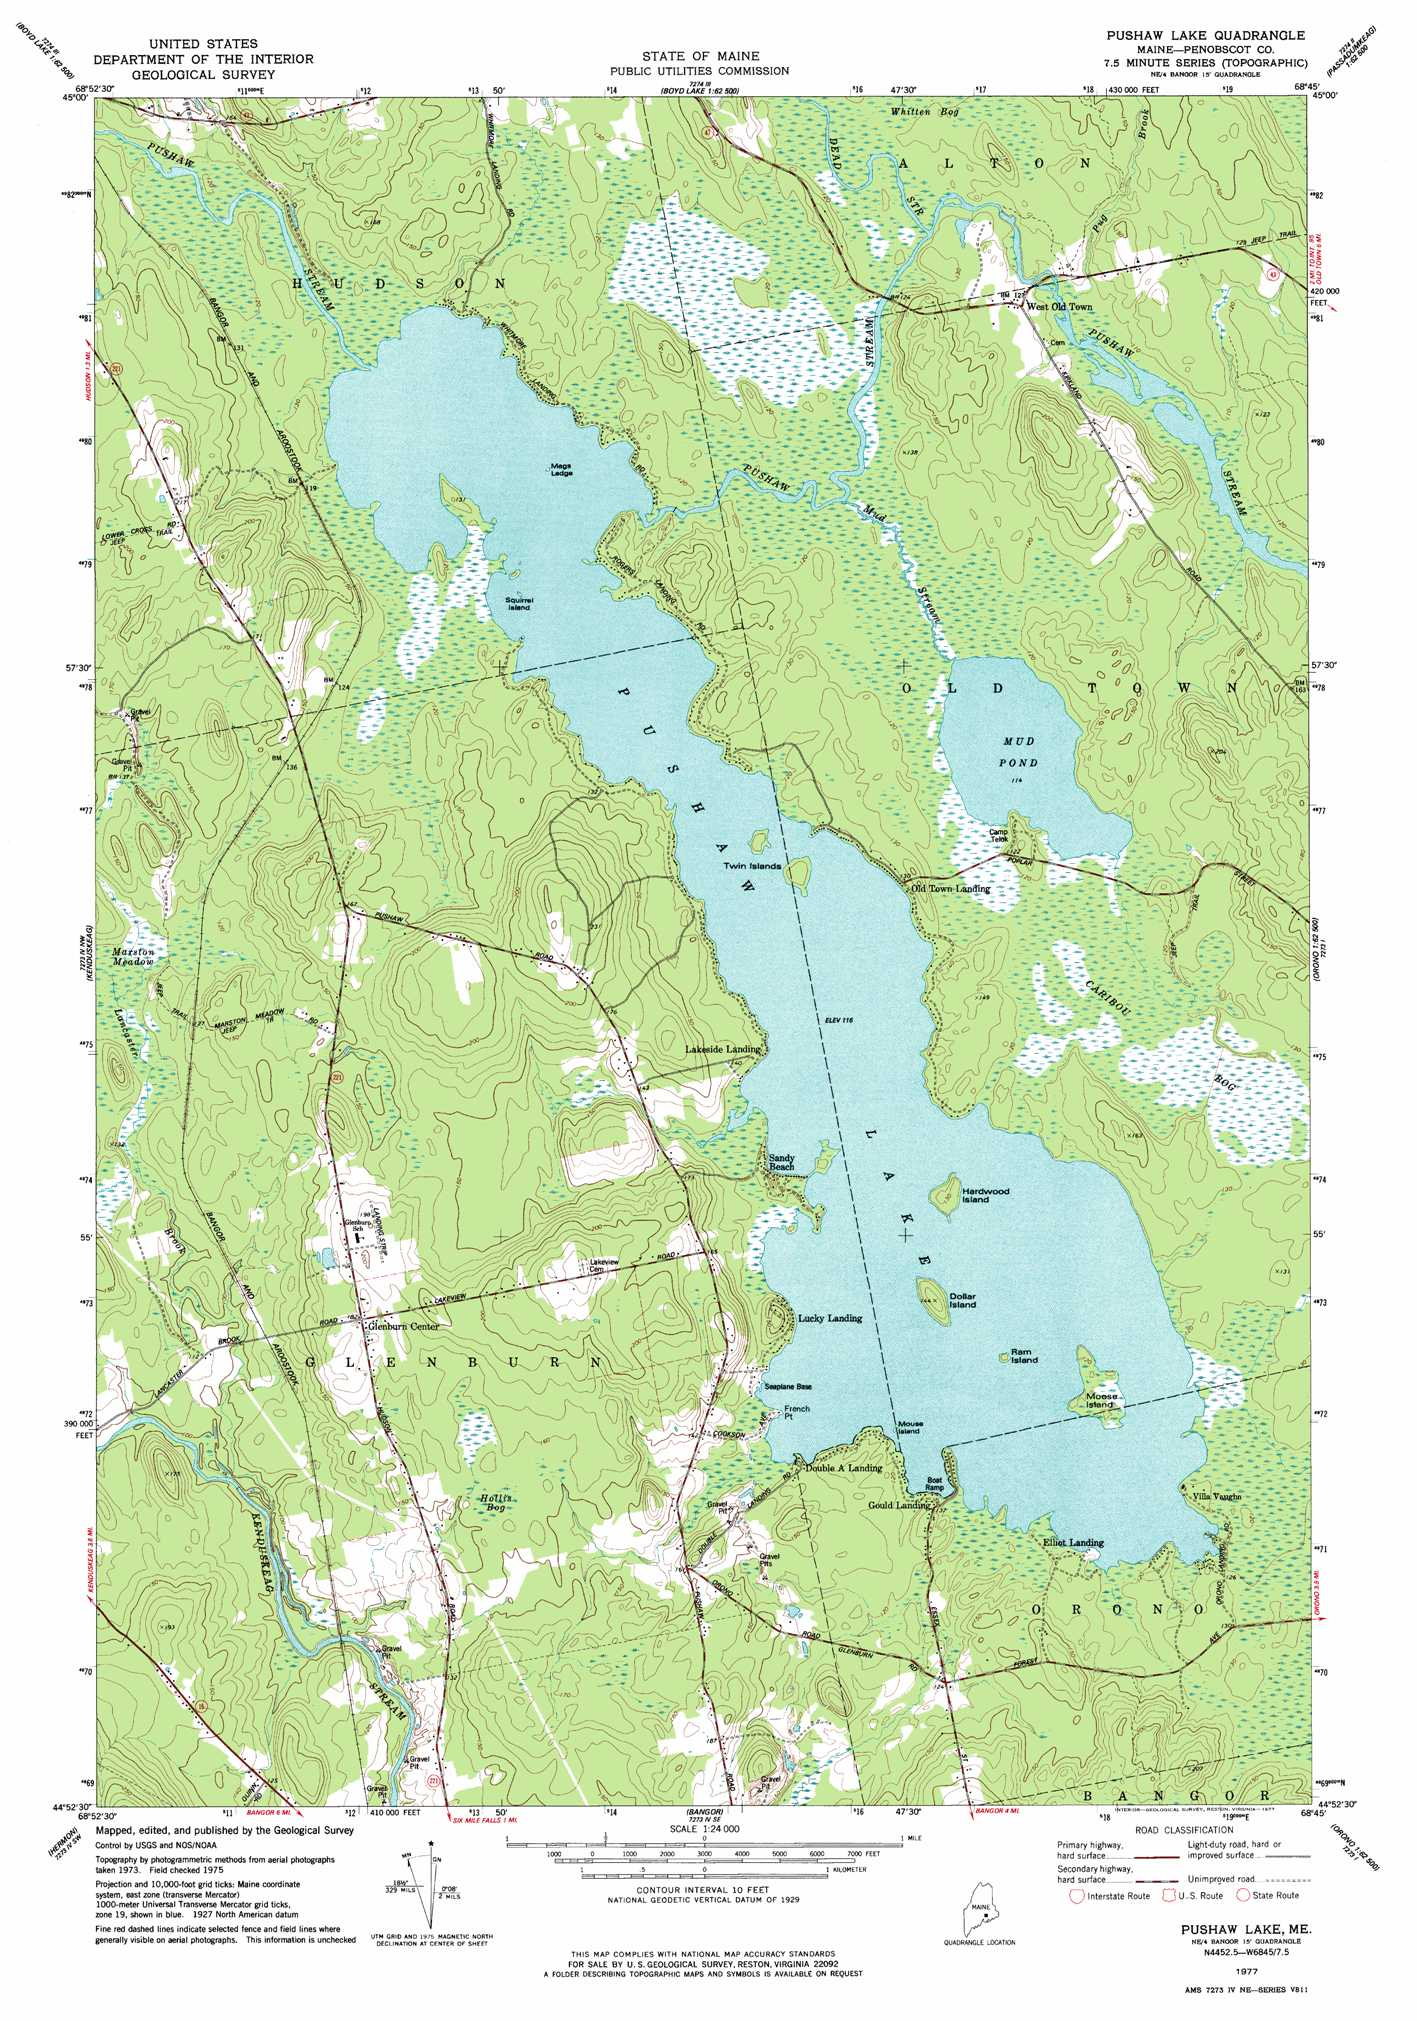 Topography Map Of Maine.Pushaw Lake Topographic Map Me Usgs Topo Quad 44068h7